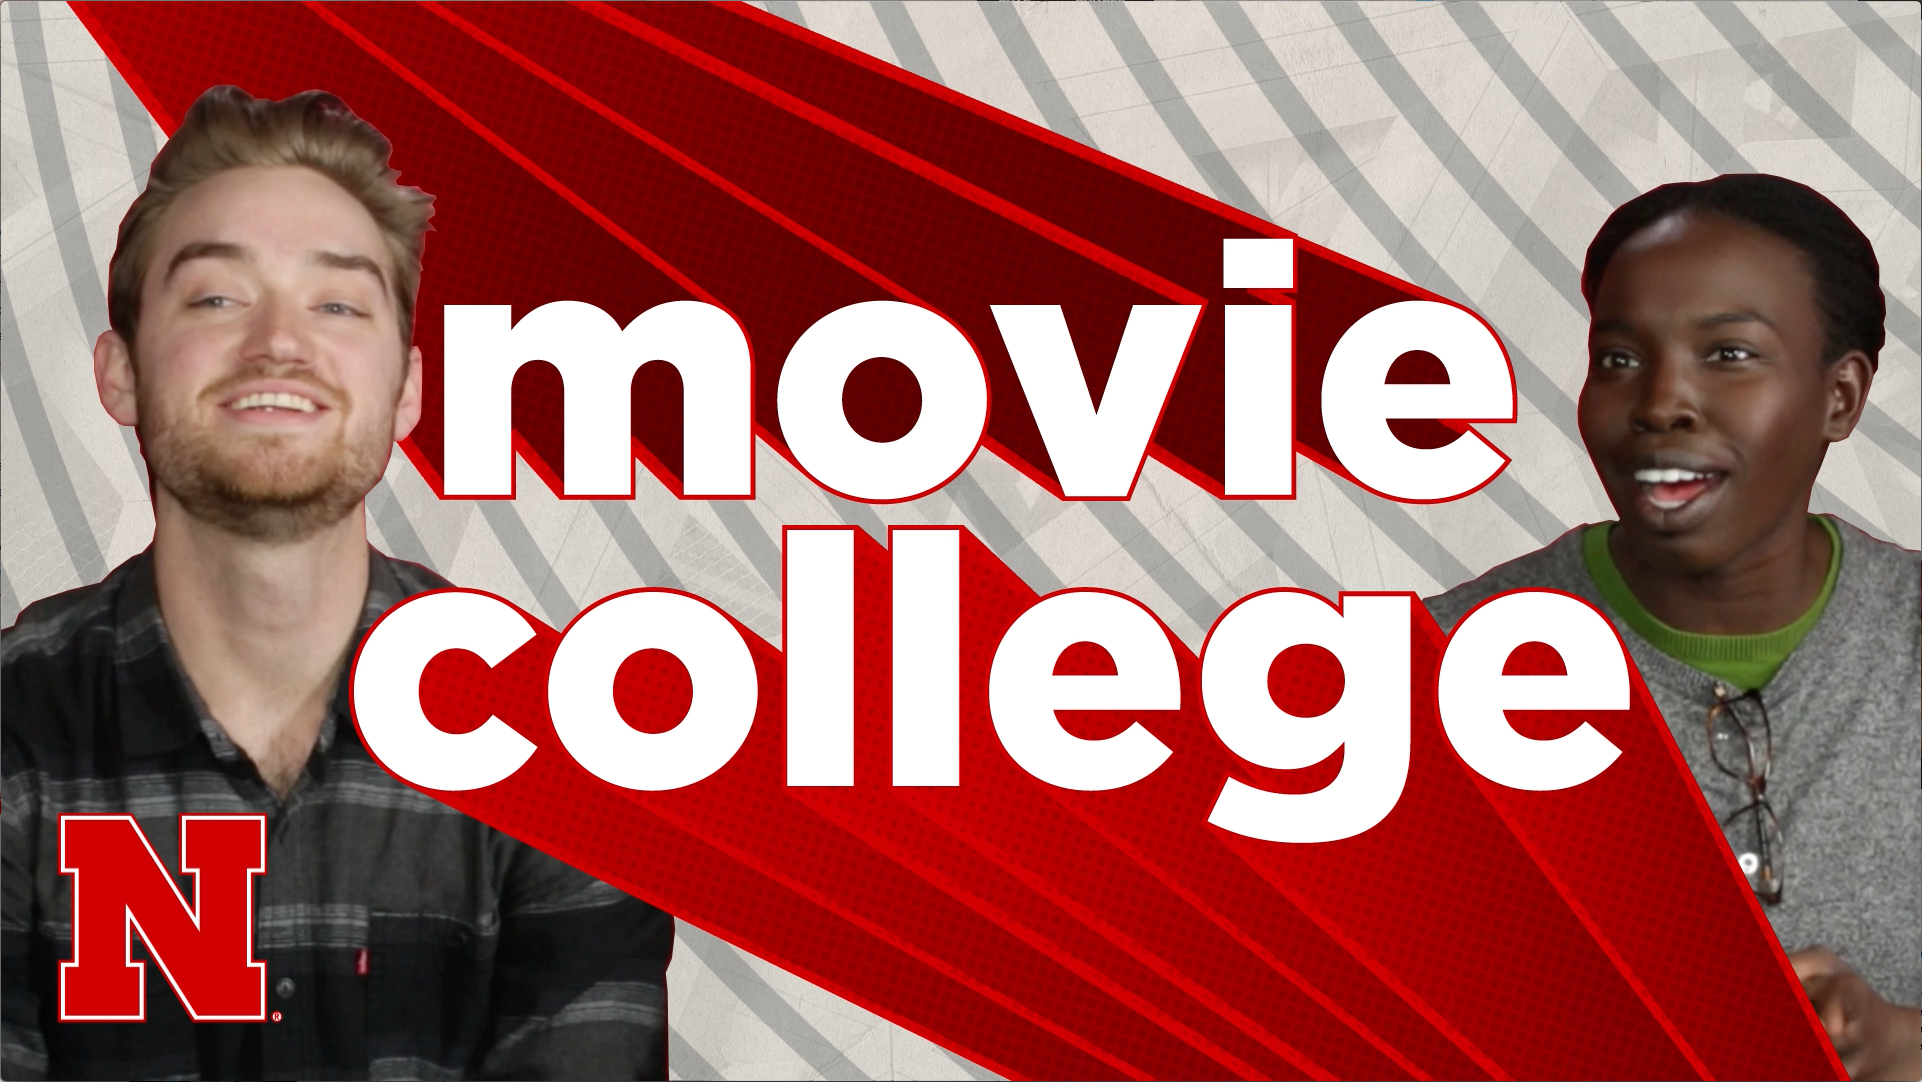 Movie College - Nebraska students react to movie scenes about college.